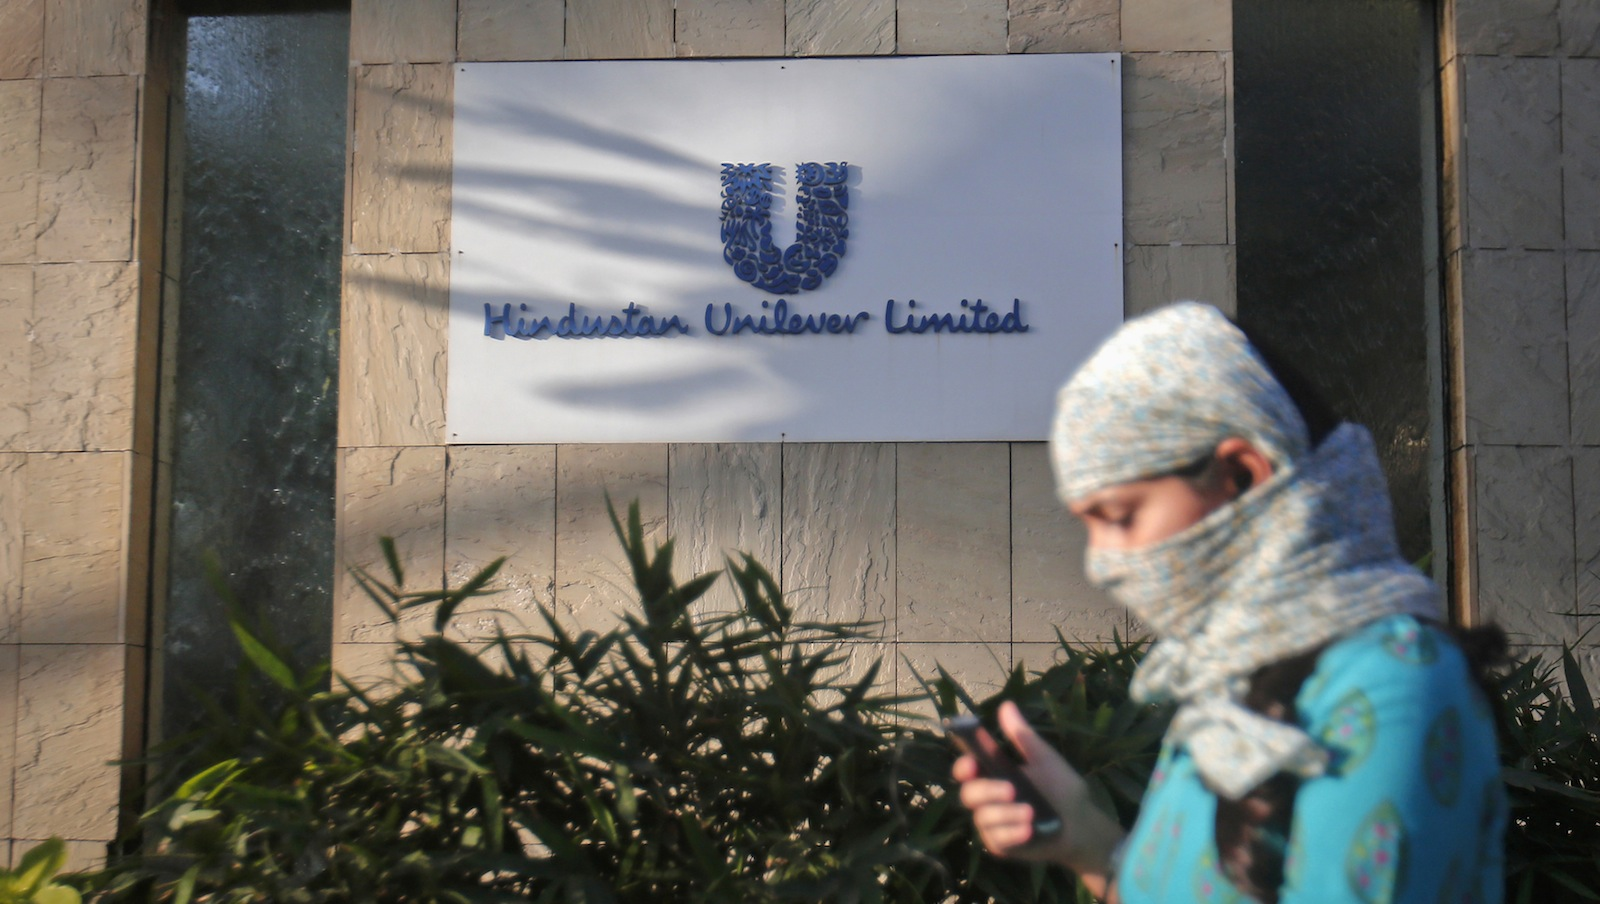 A pedestrian walks past the Hindustan Unilever Limited (HUL) headquarters in Mumbai April 29, 2013. Hindustan Unilever Ltd will intensify a price war against lesser-known detergent and skincare brands this year as it seeks to win back India's increasingly thrifty shoppers and reverse four consecutive quarters of slowing sales.